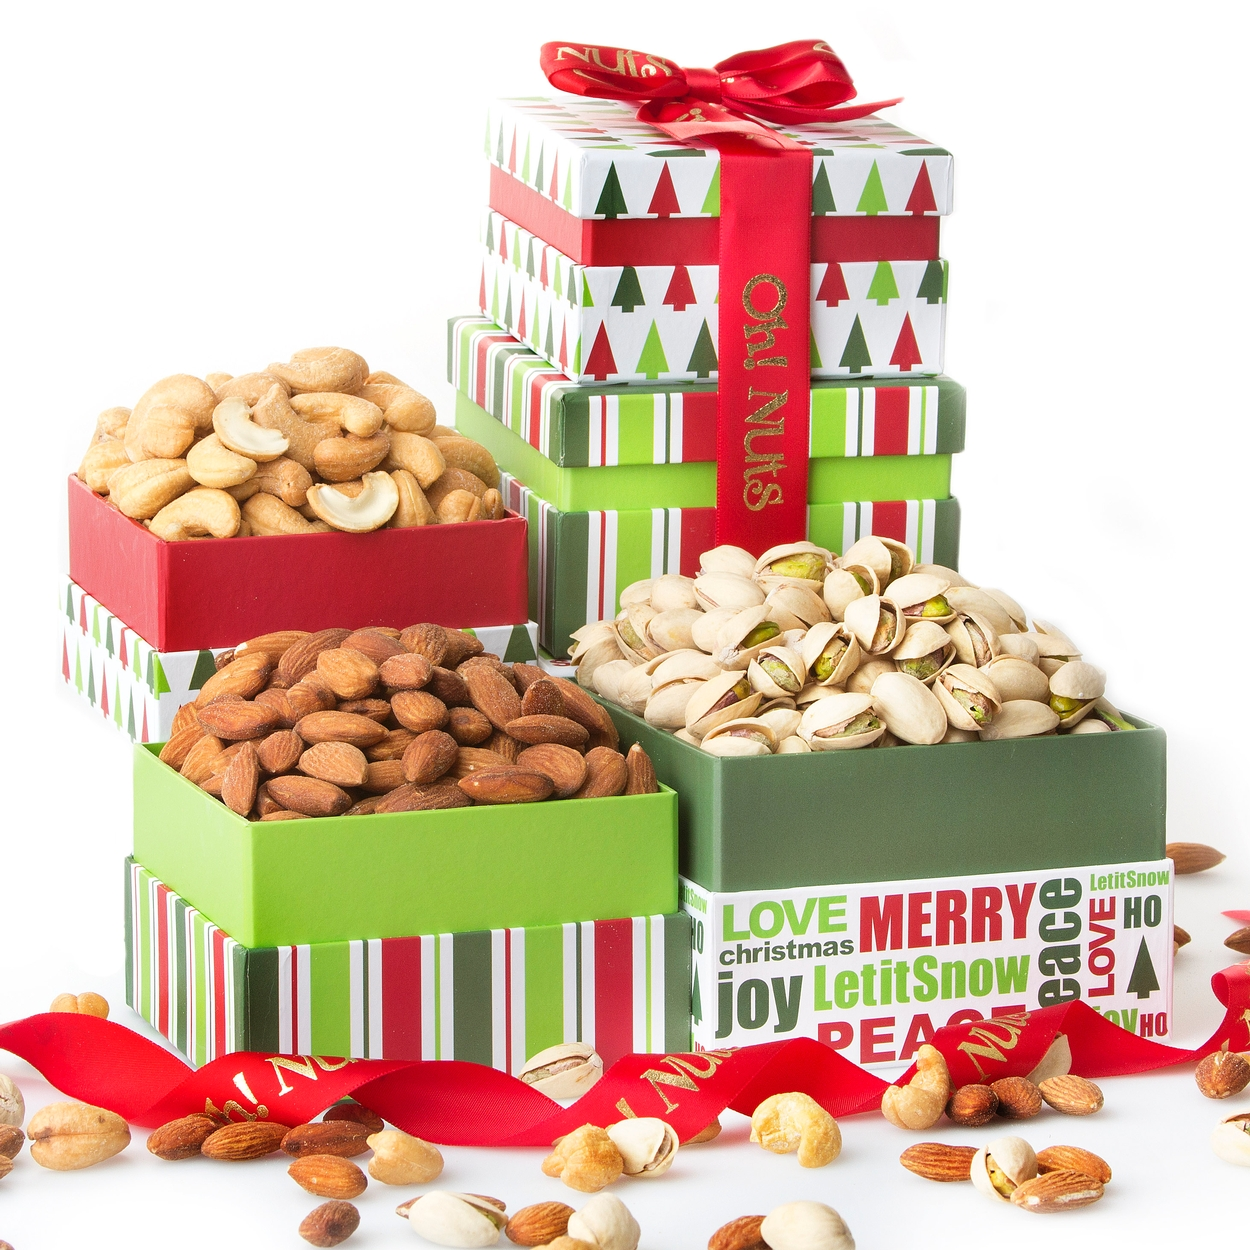 Oh! Nuts® Gourmet Nuts Gift Basket Tower | Christmas Holiday Fresh Gourmet Nut Assortment Gifts for Men Woman or Family u2022 Holiday Nut Gift Baskets ...  sc 1 st  Oh! Nuts & Oh! Nuts® Gourmet Nuts Gift Basket Tower | Christmas Holiday Fresh ...